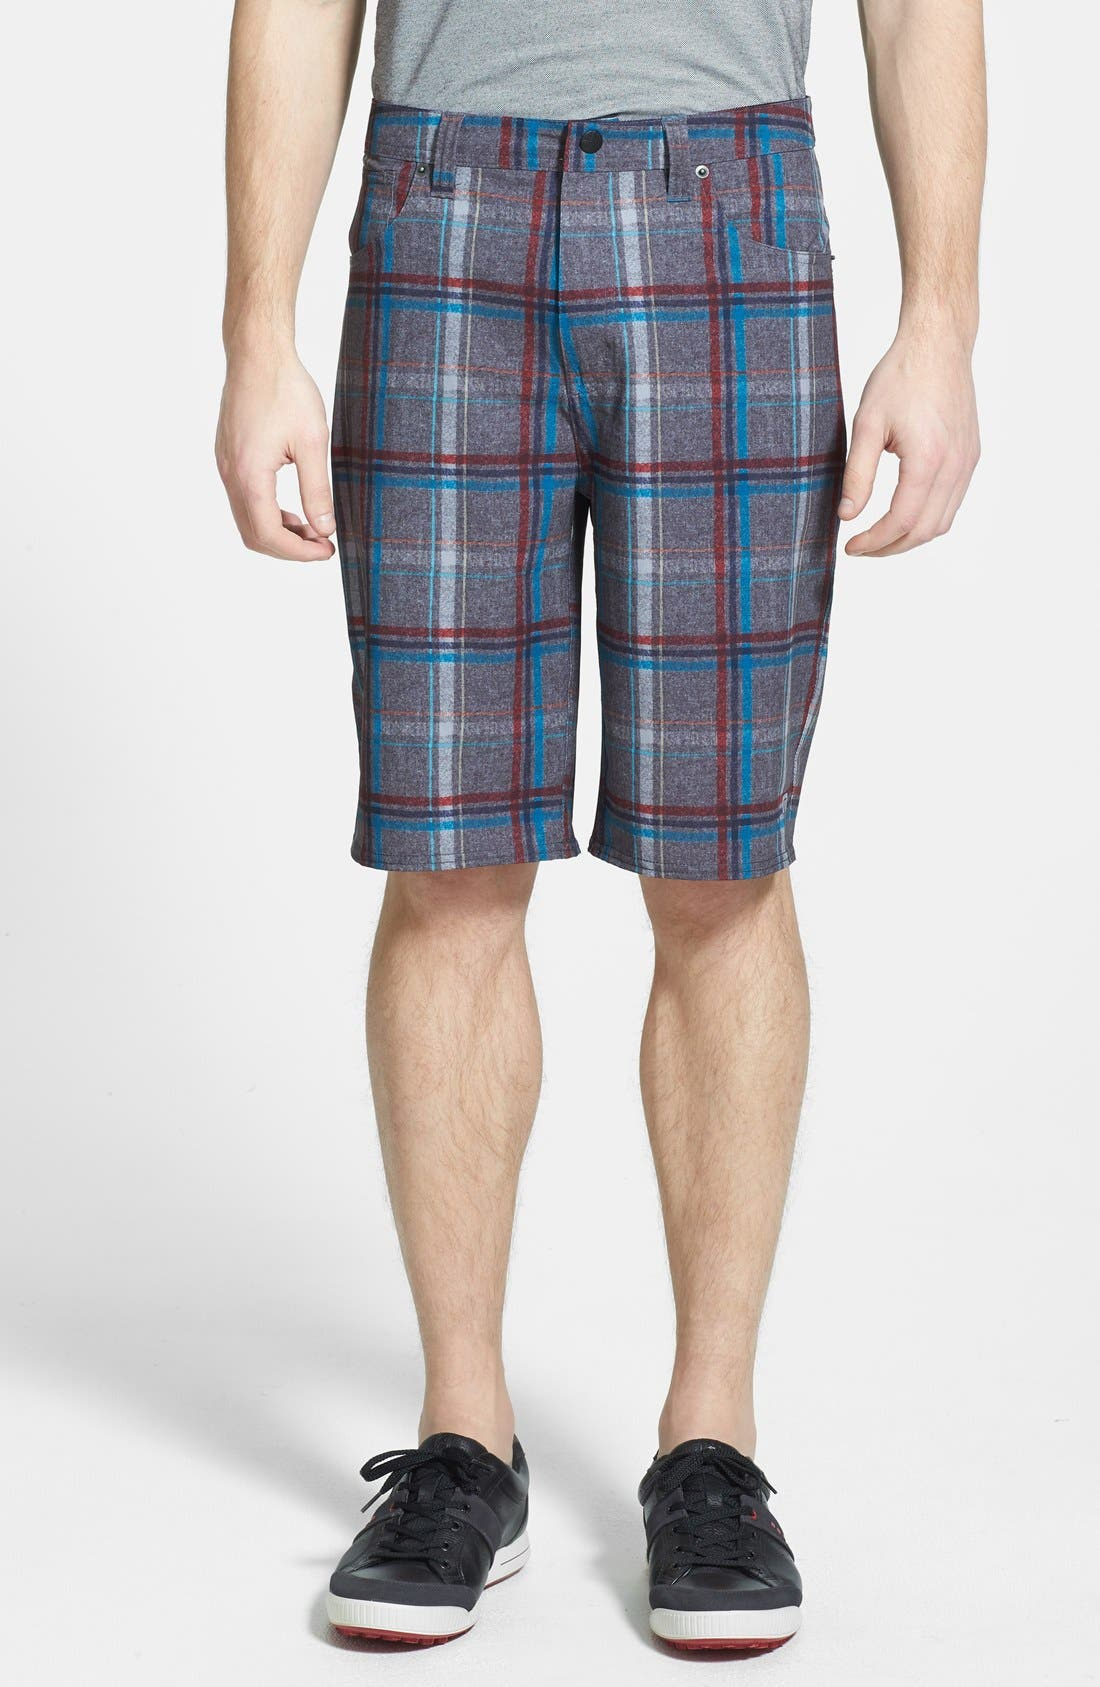 'Marsh' Performance Stretch Shorts,                             Main thumbnail 1, color,                             Grey/ Red/ Blue Plaid